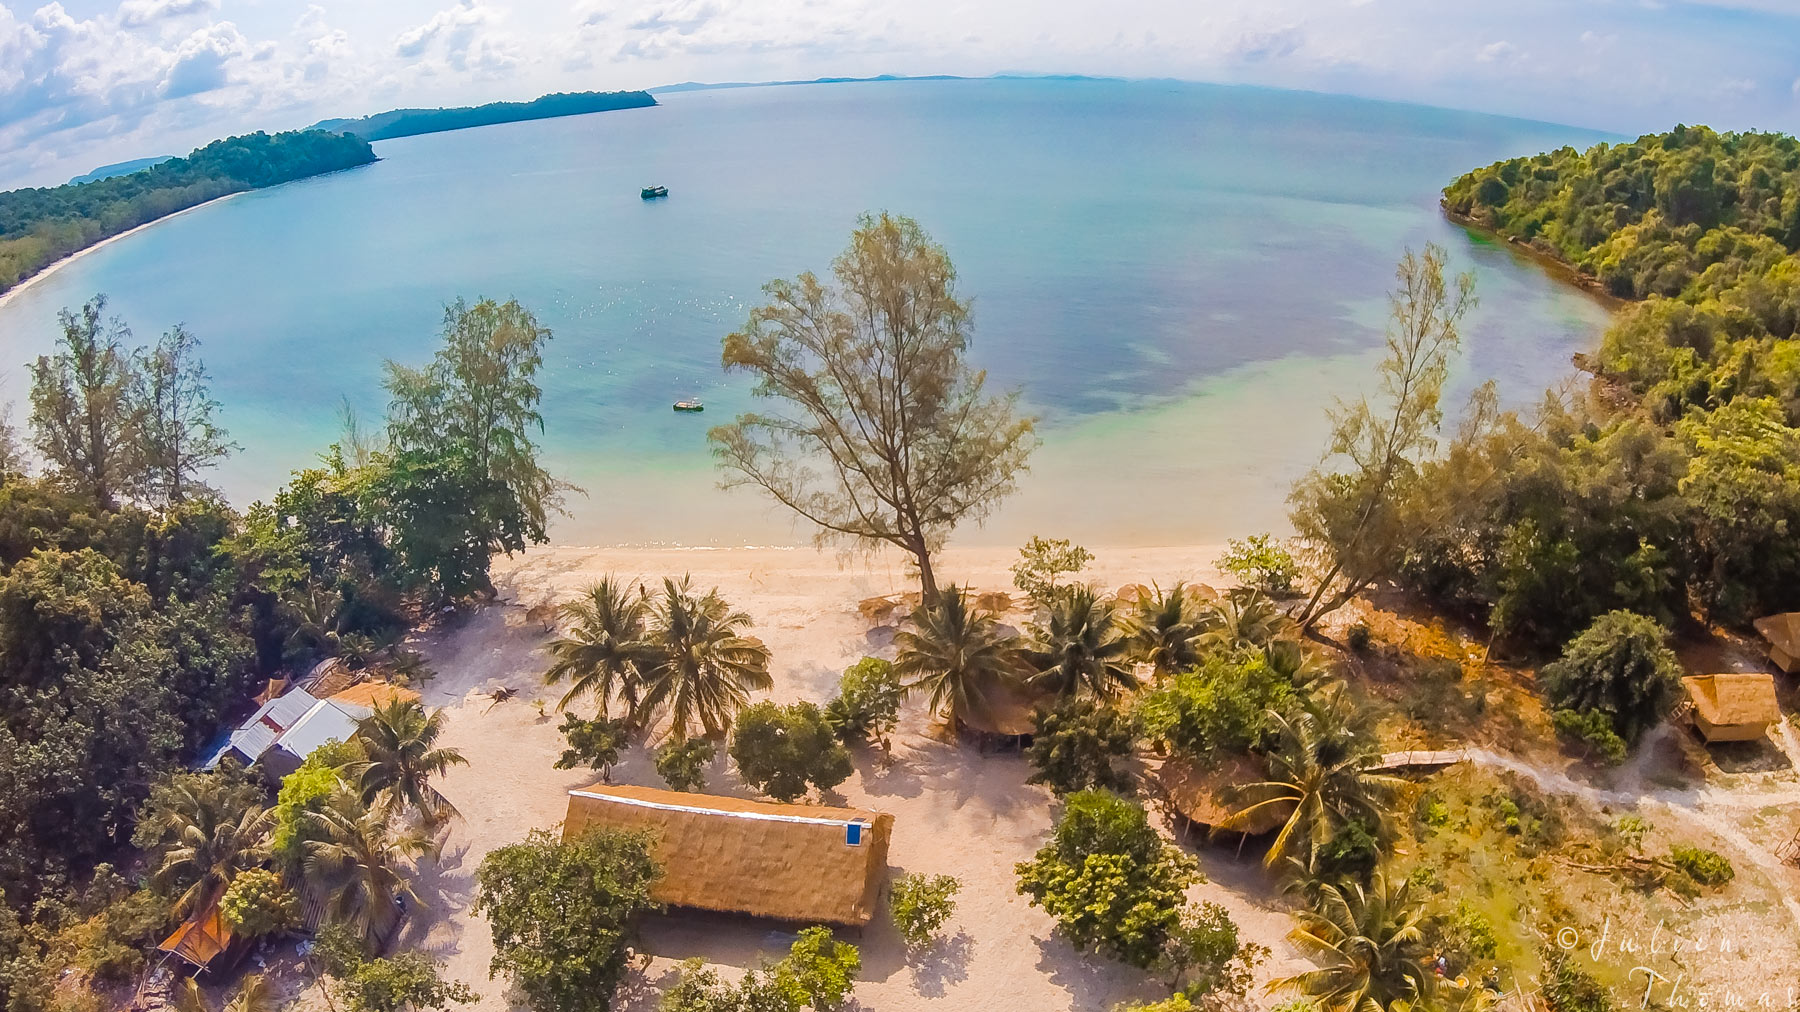 Creek in Koh Ta Kiev Island, Gulf of Thailand - Cambodia with long sandy beach, transparent blue water and bungalows. Drone - aerial photography by Julien Thomas.